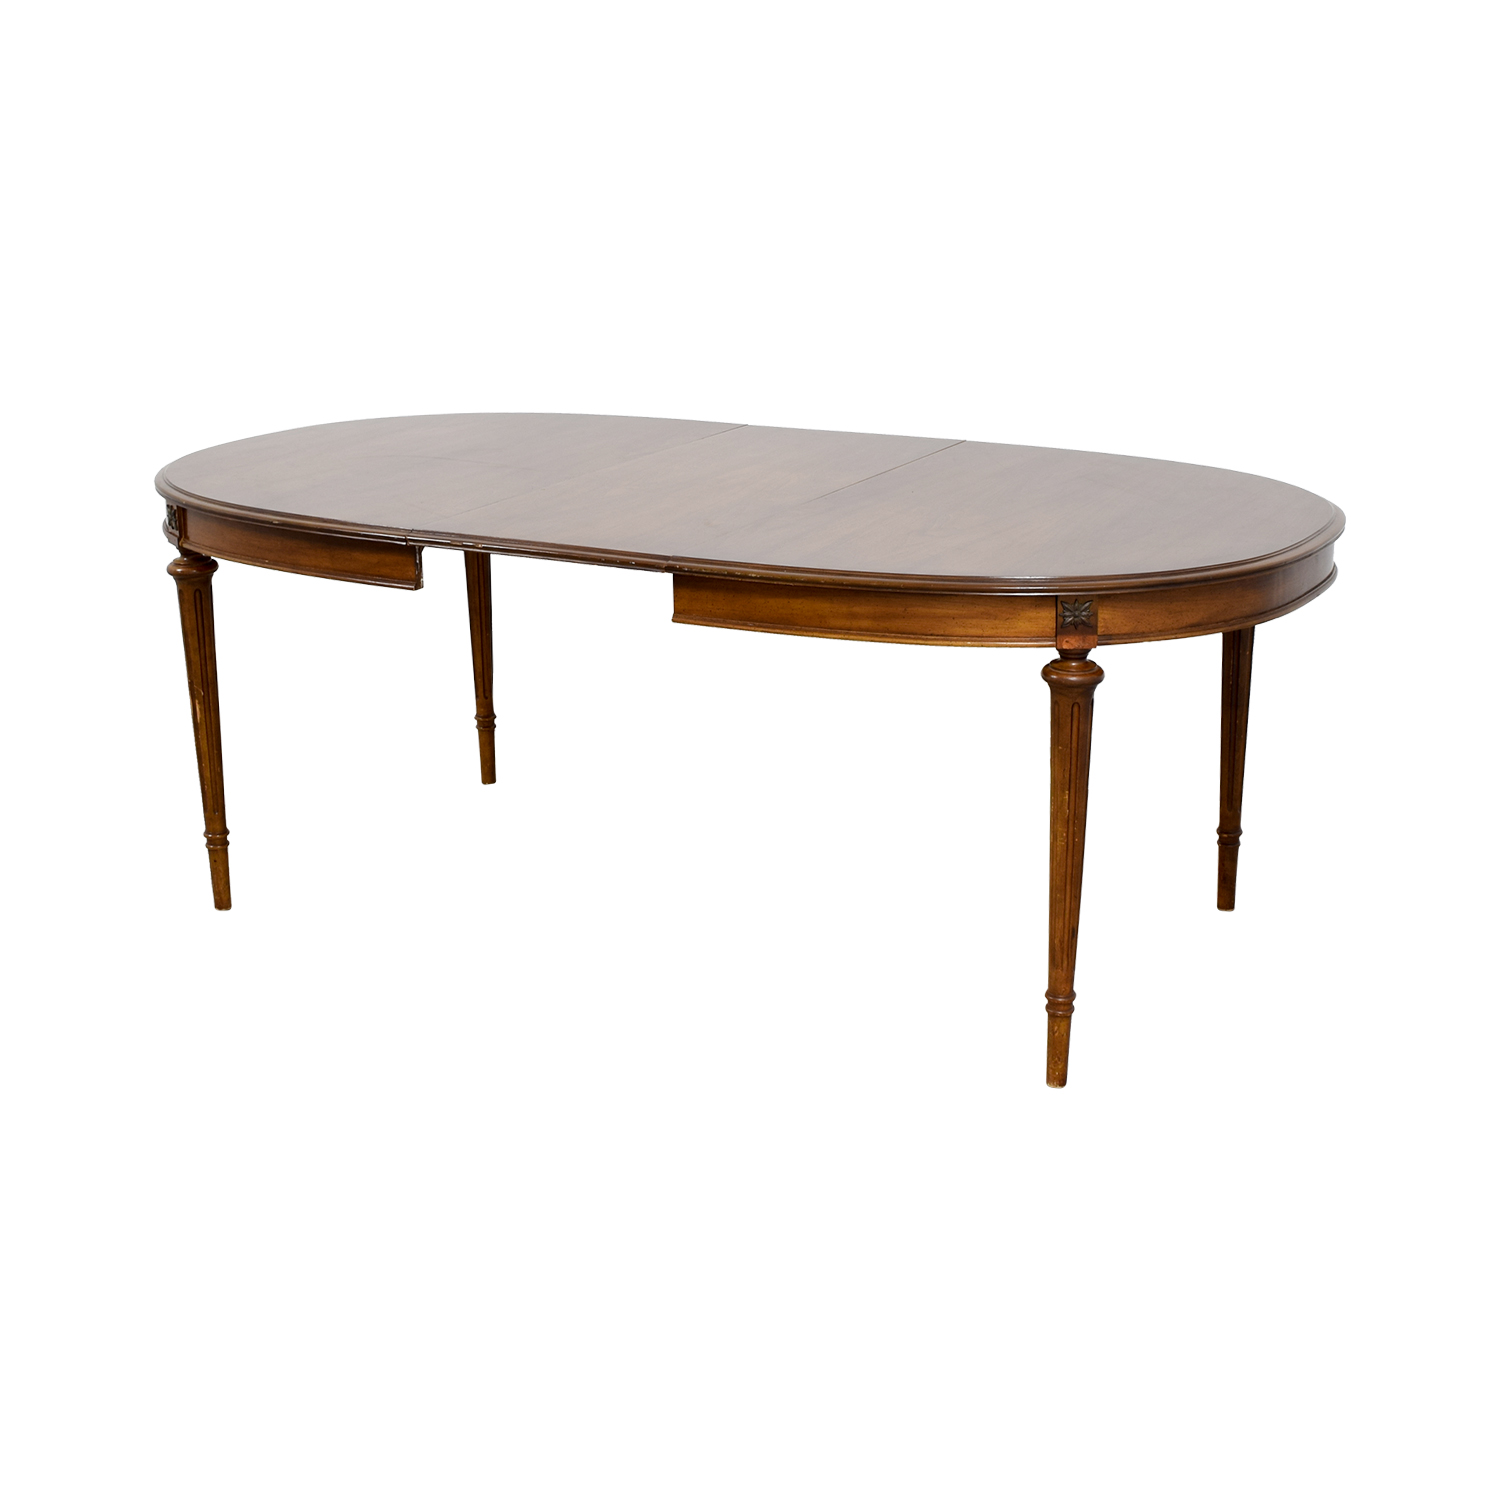 Wood Extendable Oval Dining Table dimensions